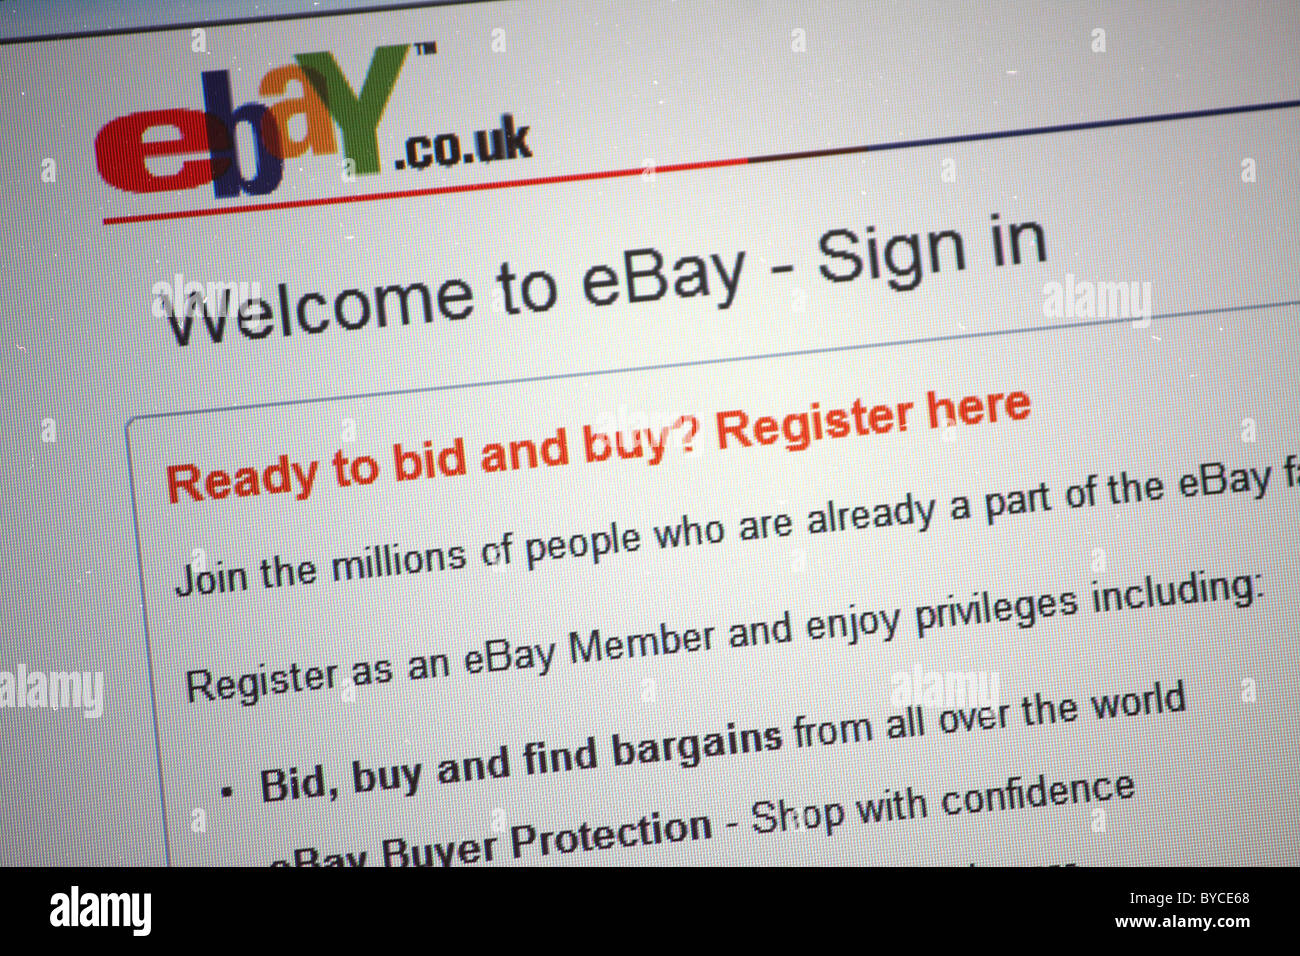 The Ebay Registration And Sign Up Web Page For Their Internet Auction Stock Photo Alamy